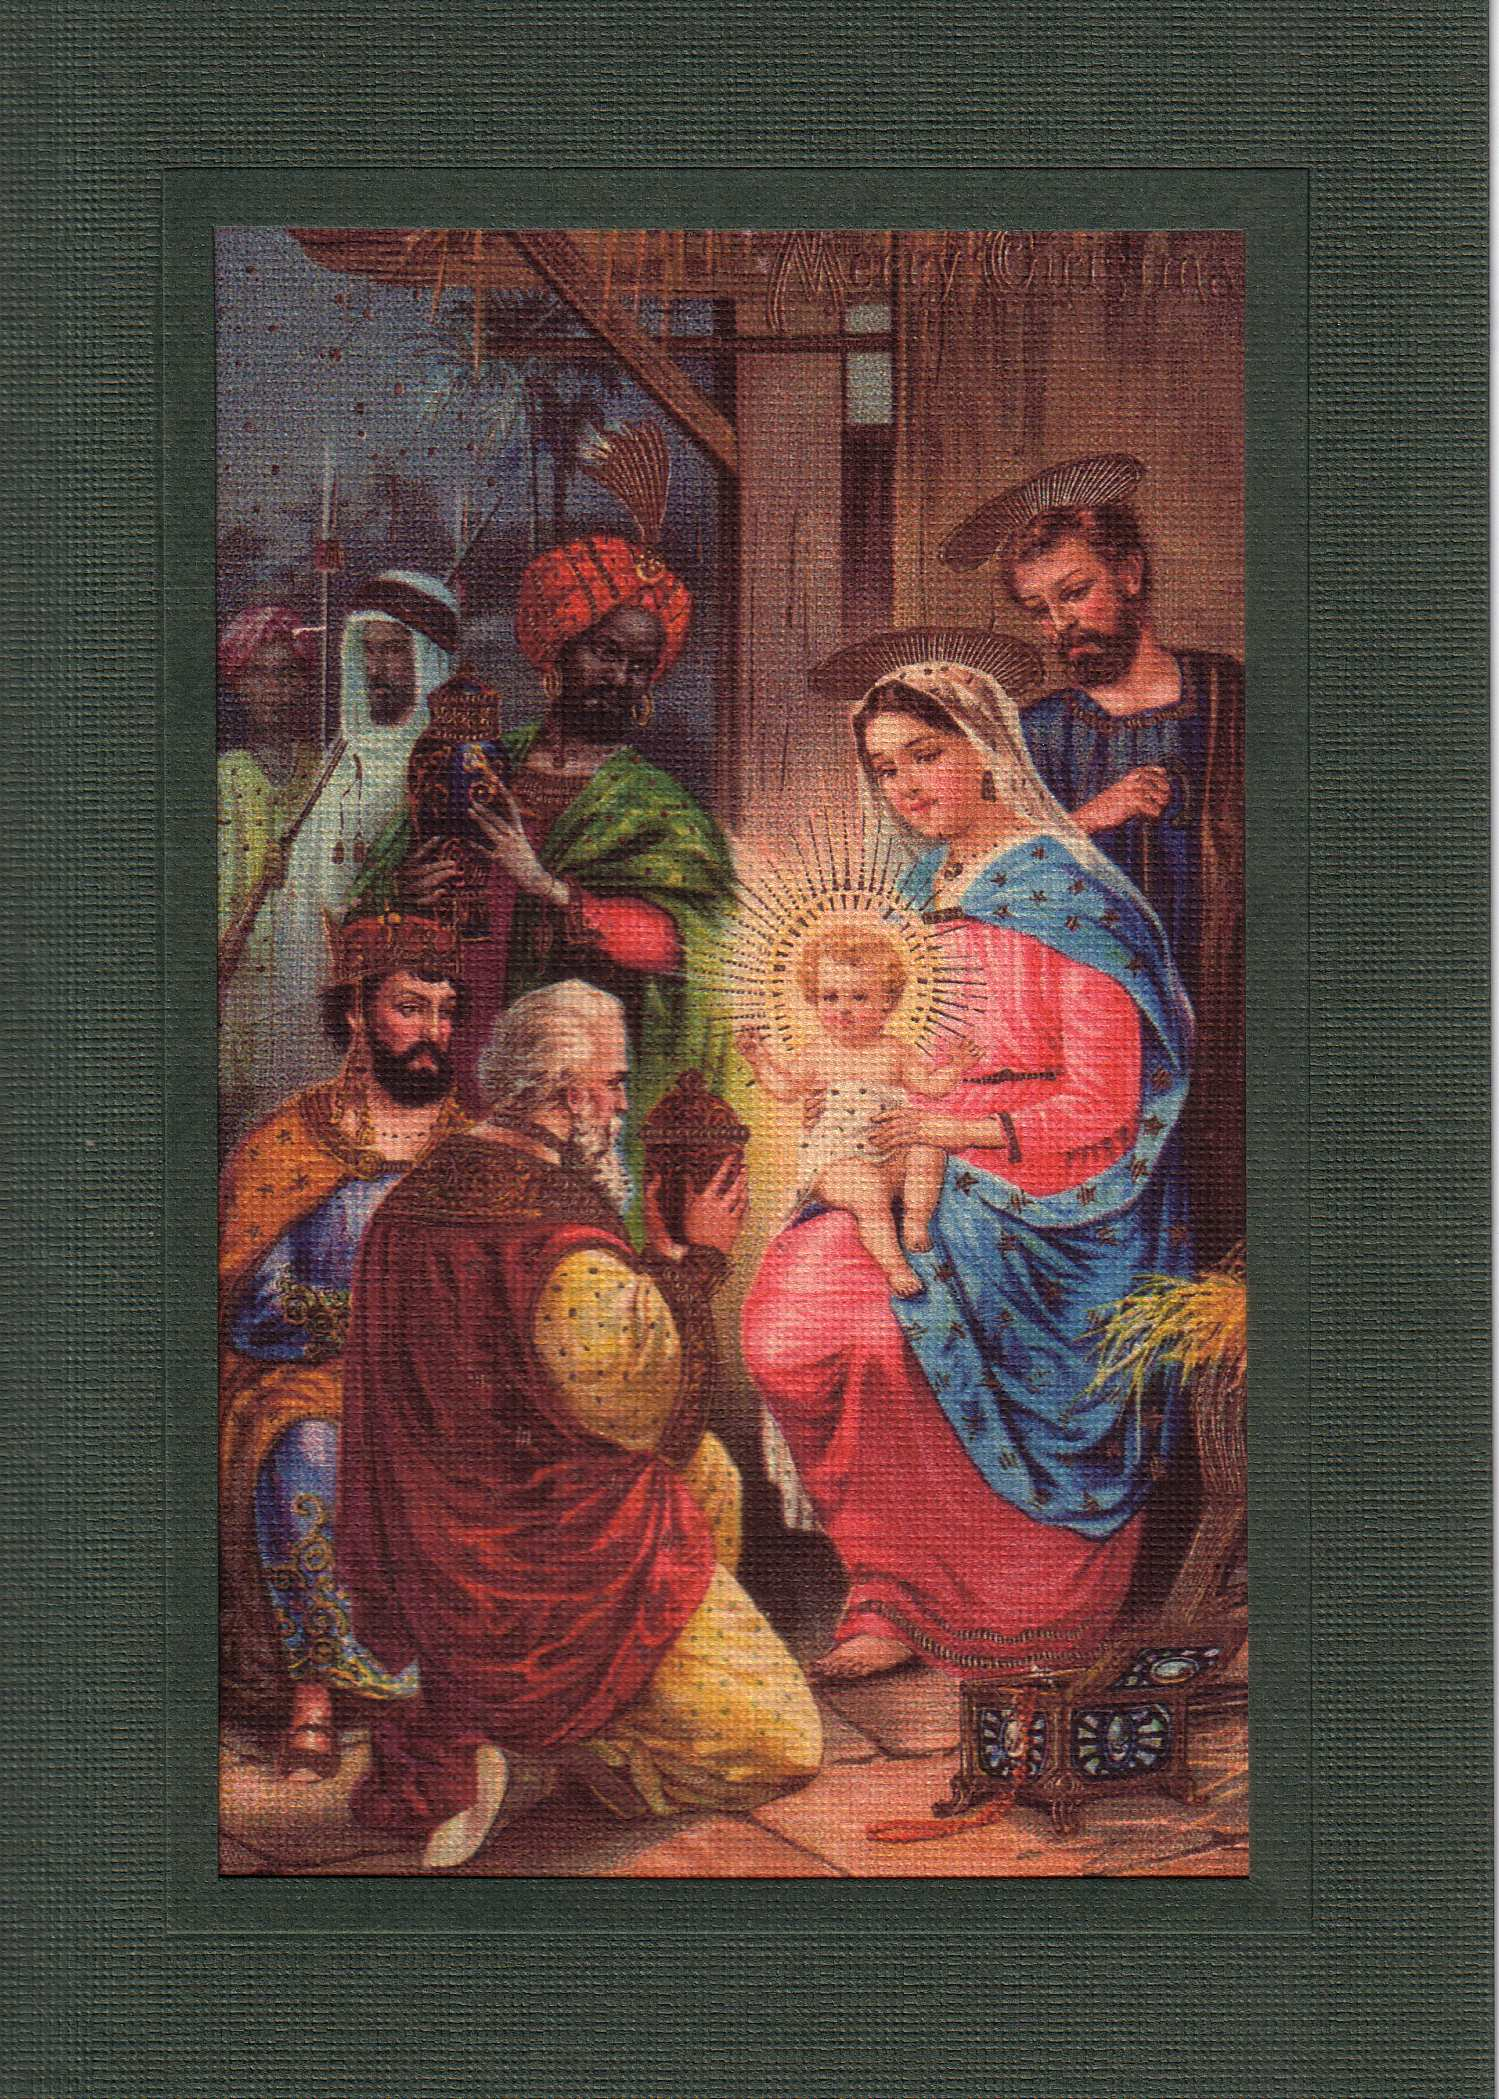 Nativity-Greetings from the Past-Plymouth Cards